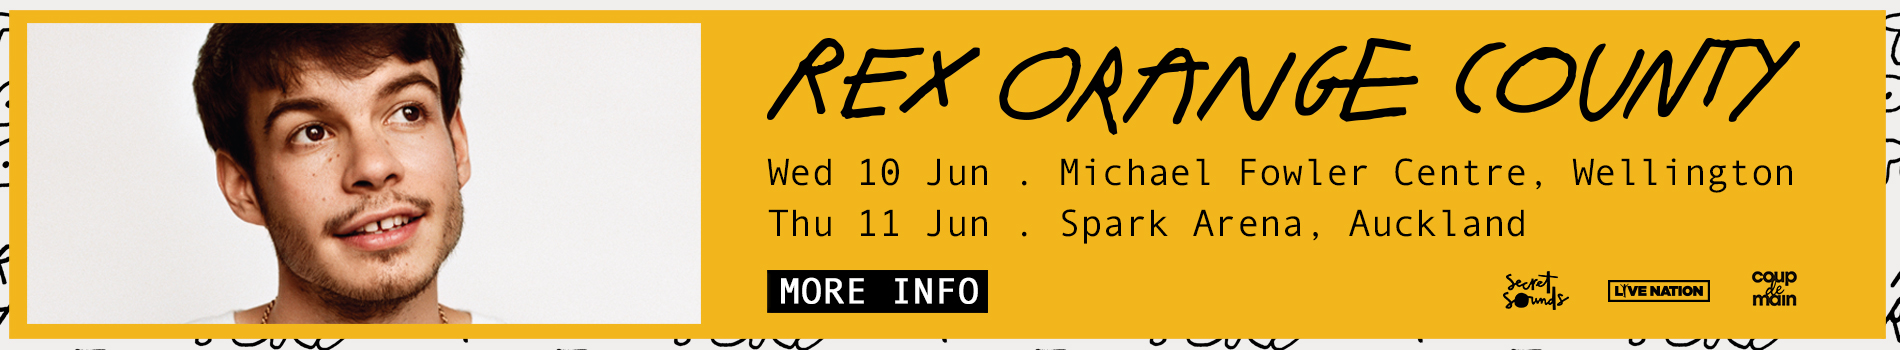 Rex Orange County Tour - Masthead Banner